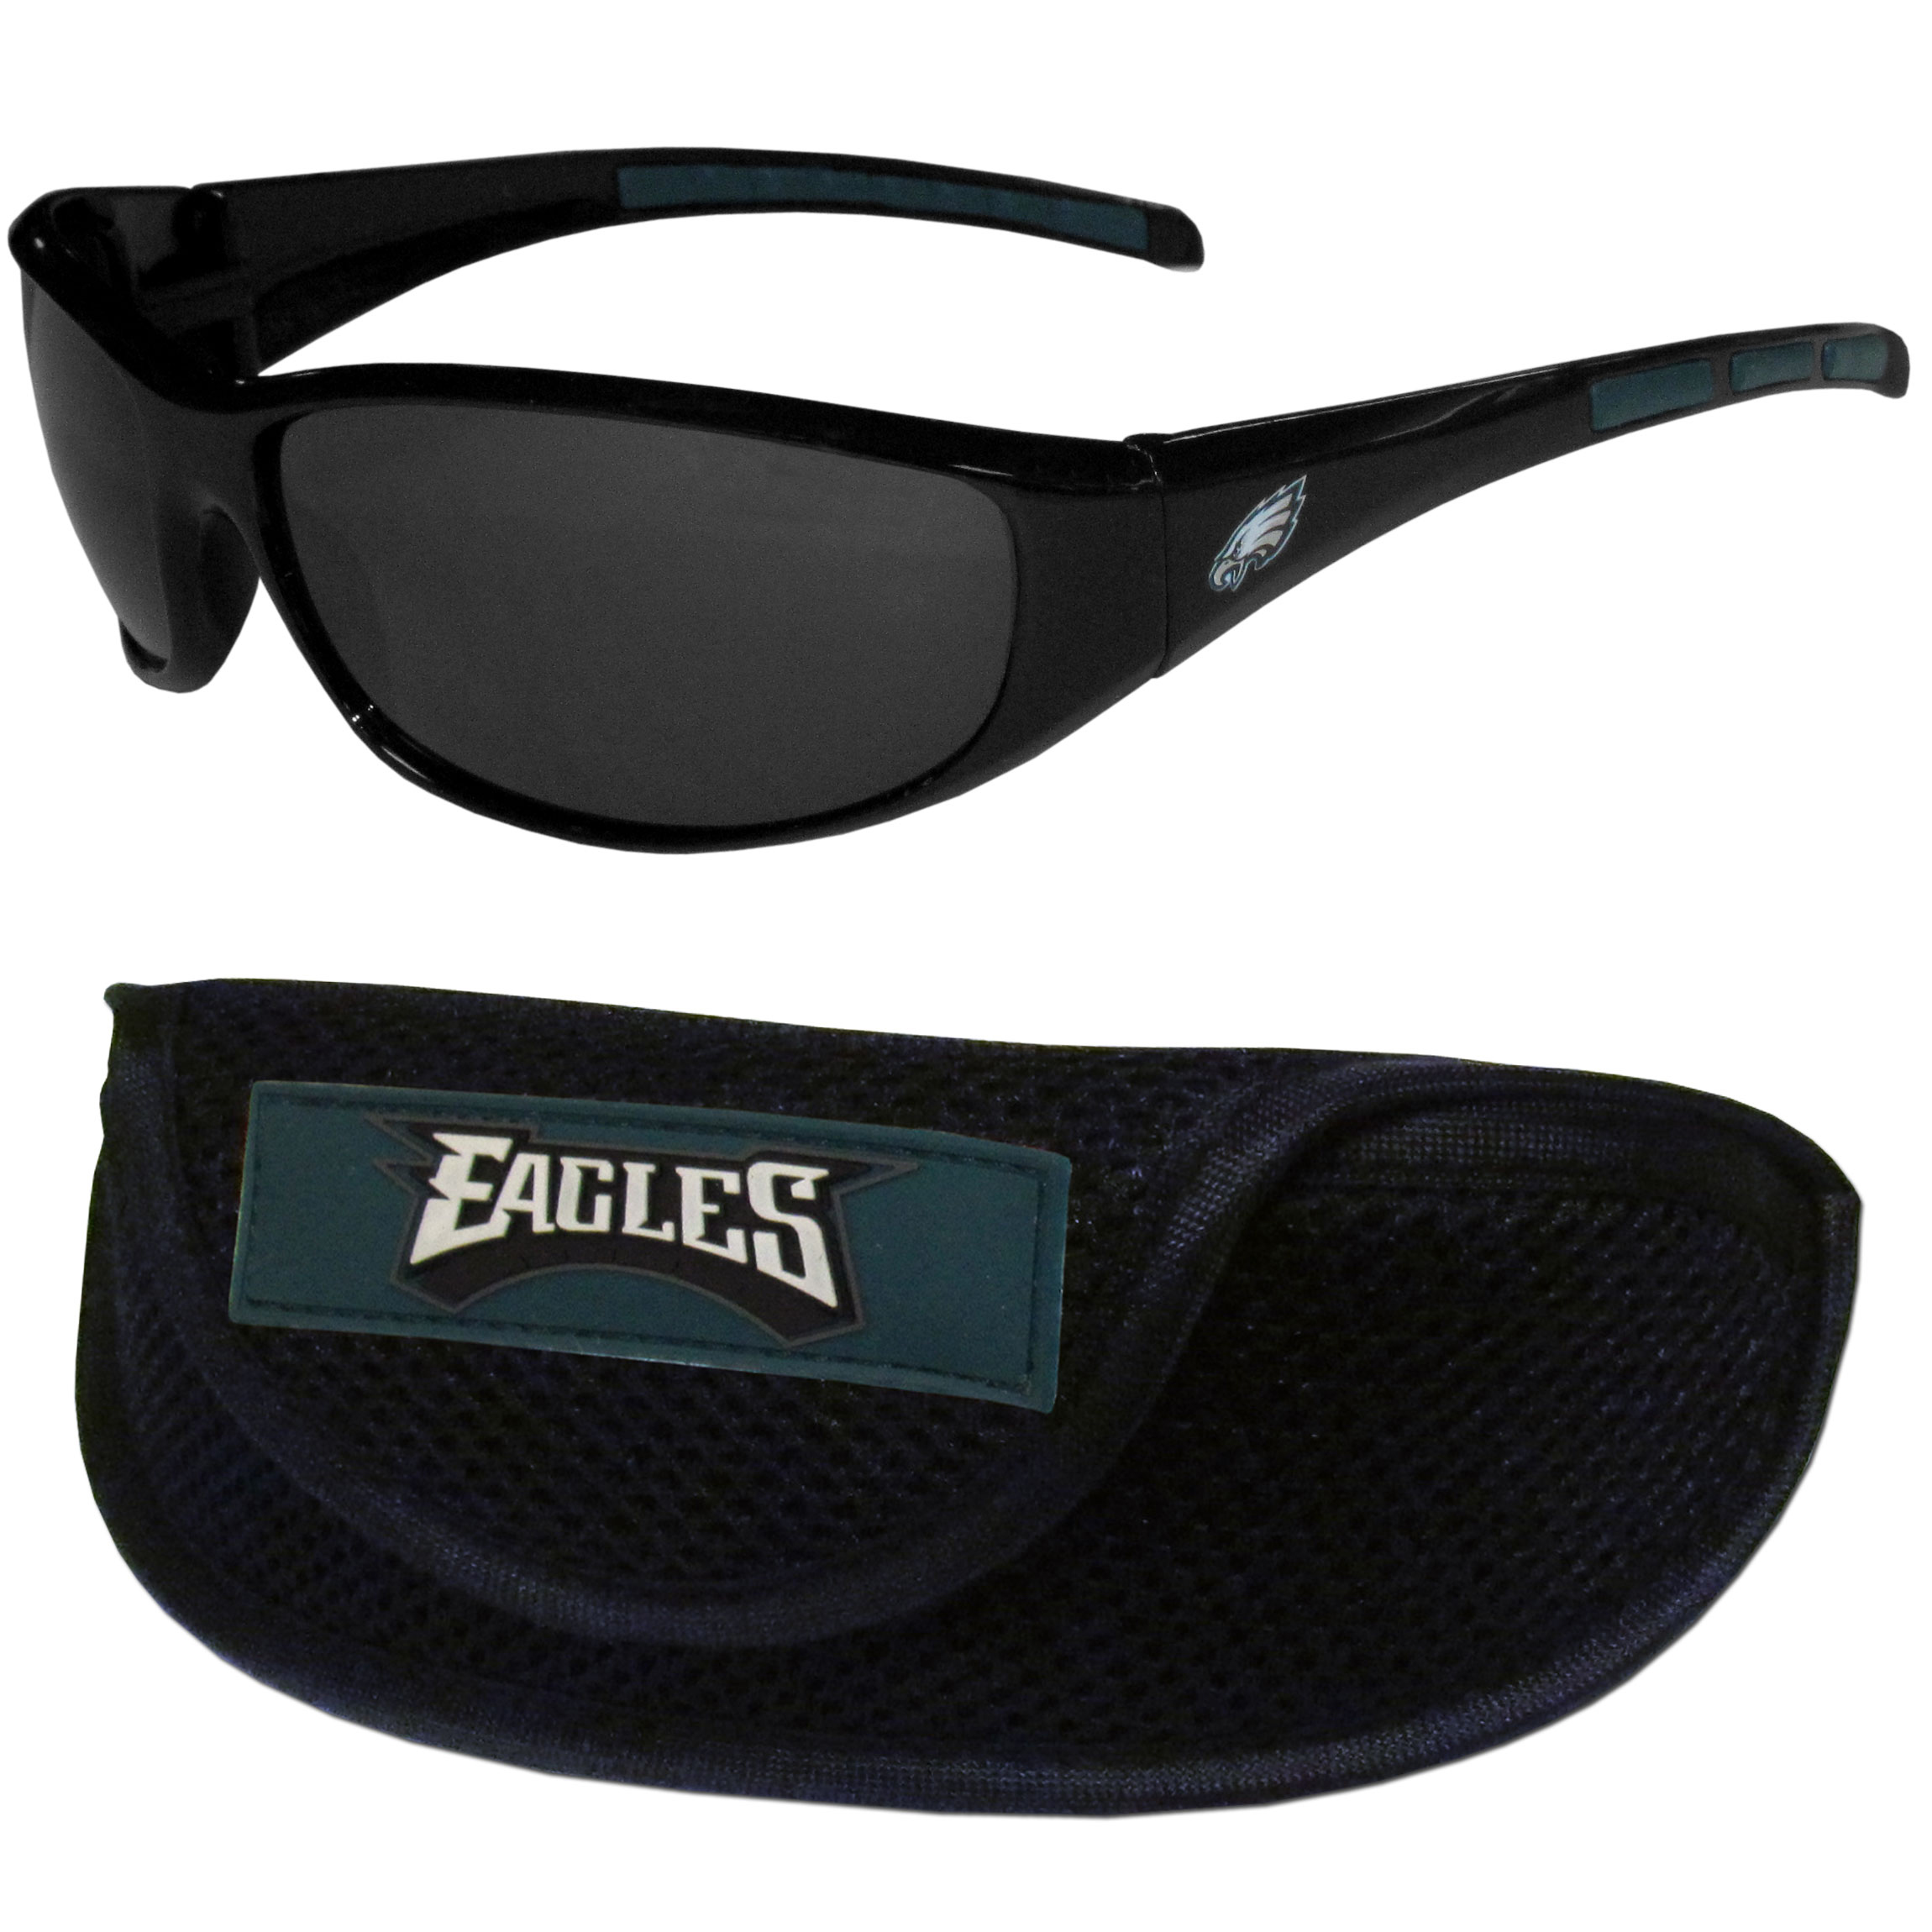 Philadelphia Eagles Wrap Sunglass and Case Set - This great set includes a high quality pair of  Philadelphia Eagles wrap sunglasses and sport carrying case.